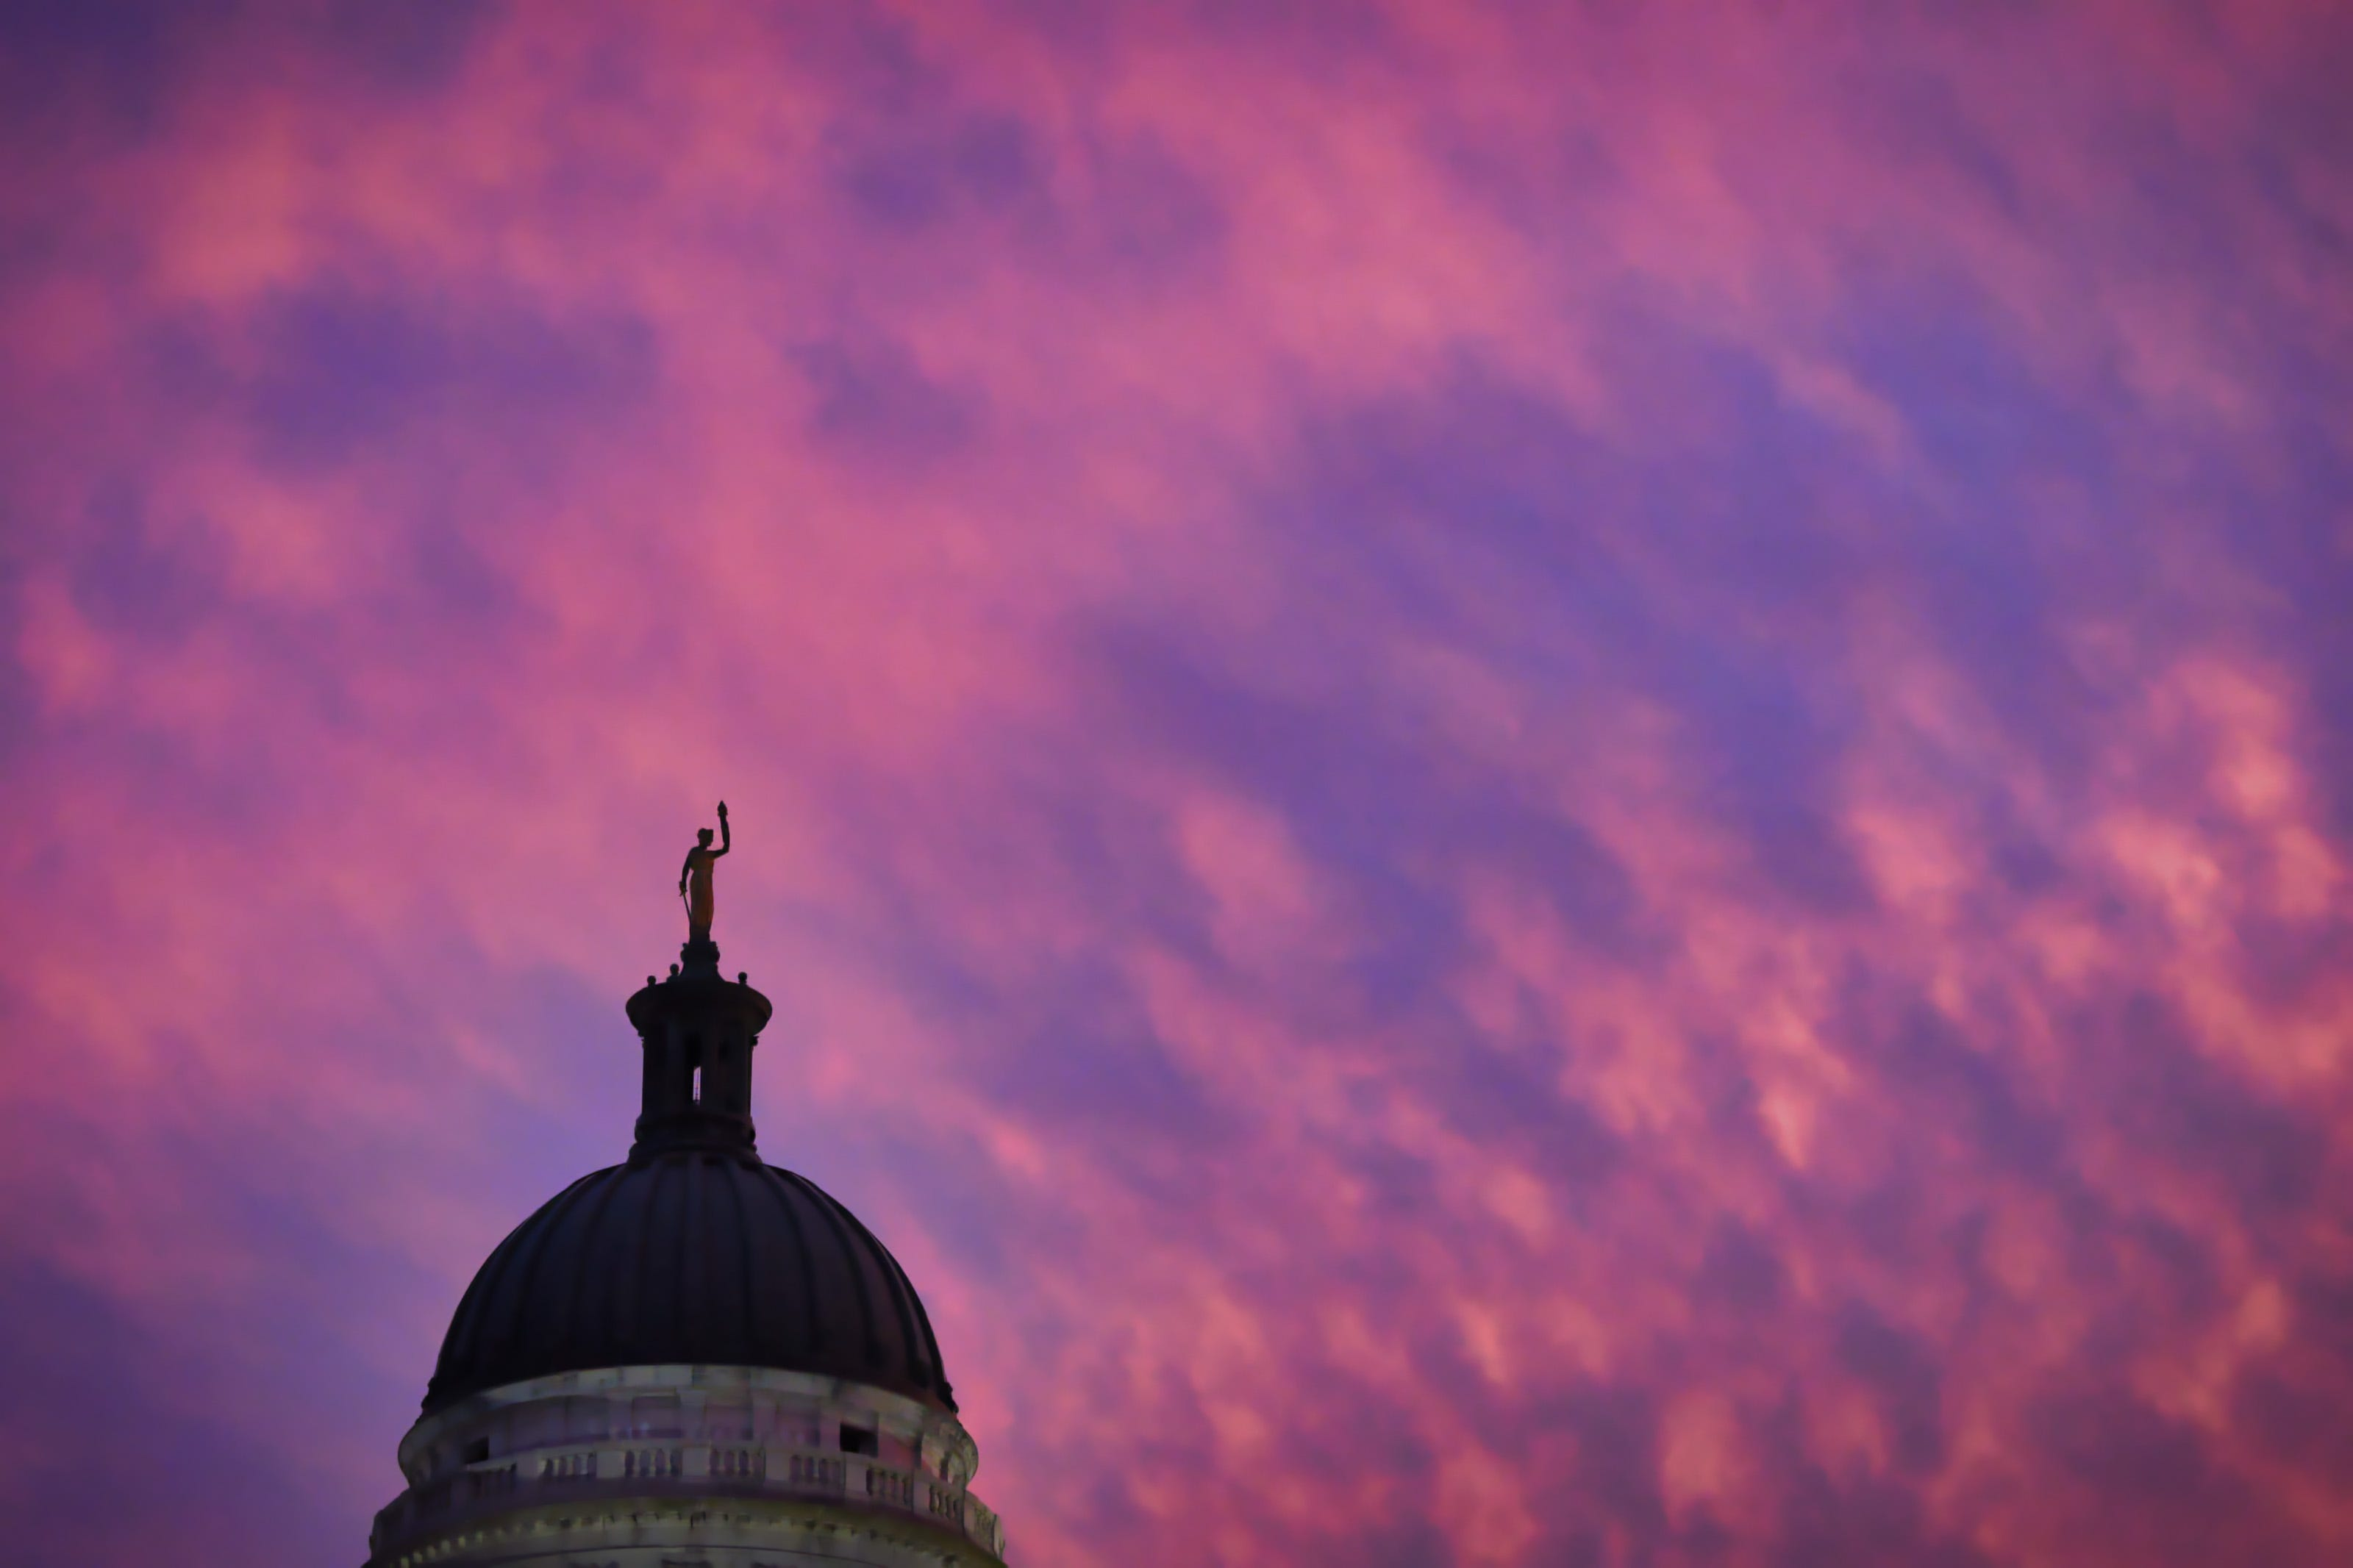 The dome atop the Bergen County Courthouse in Hackensack is seen against a colorful evening sky on 08/04/21.